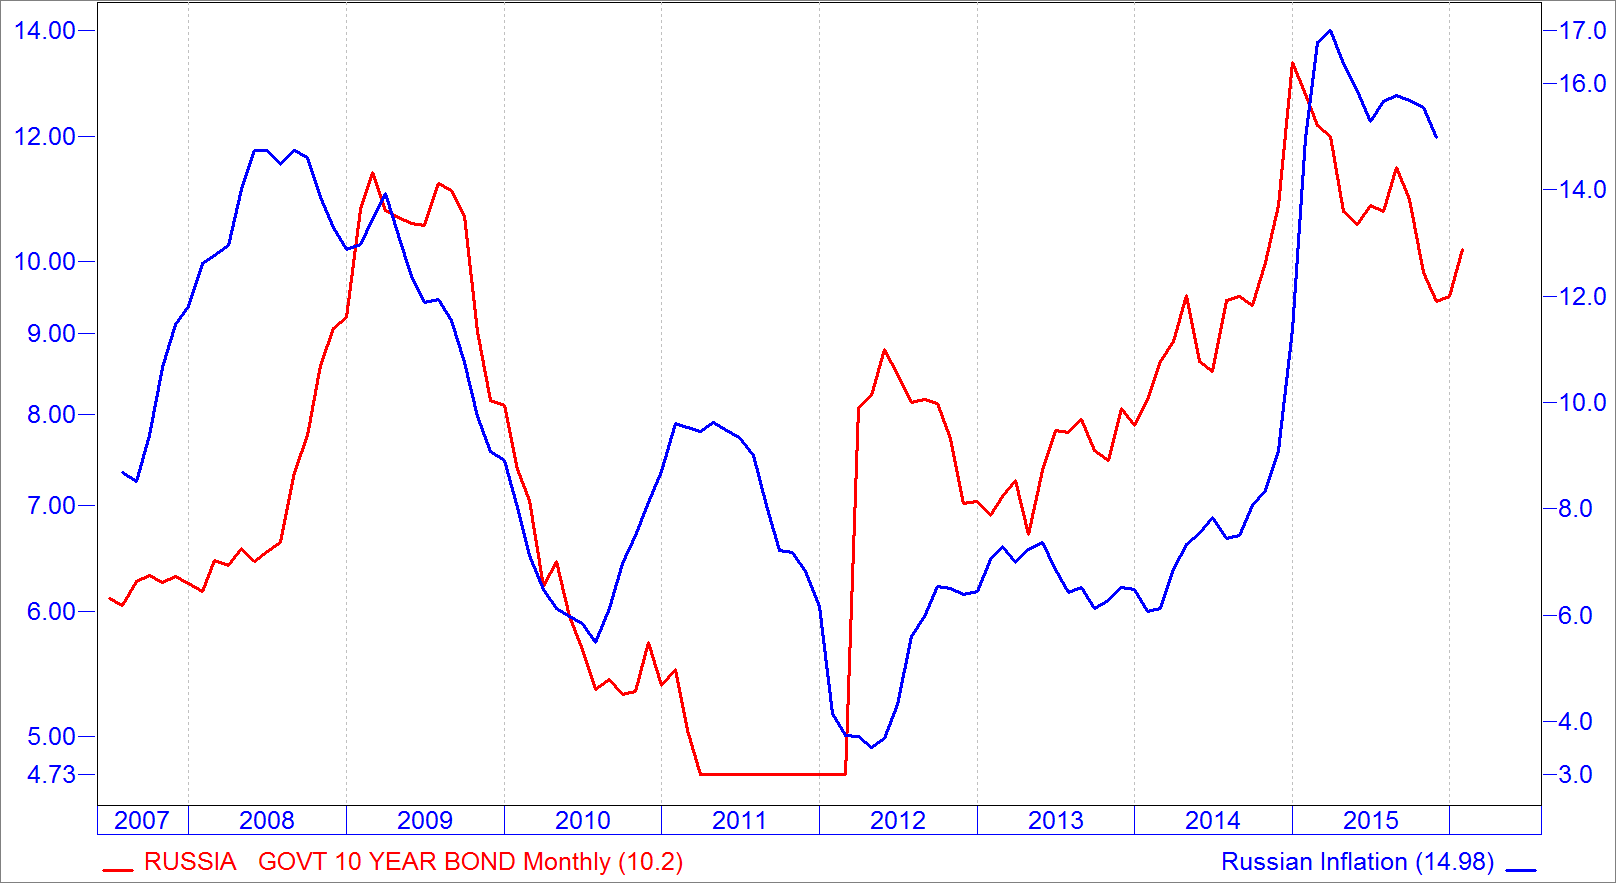 chart-6-russian-bond-yields-correlated-to-inflation